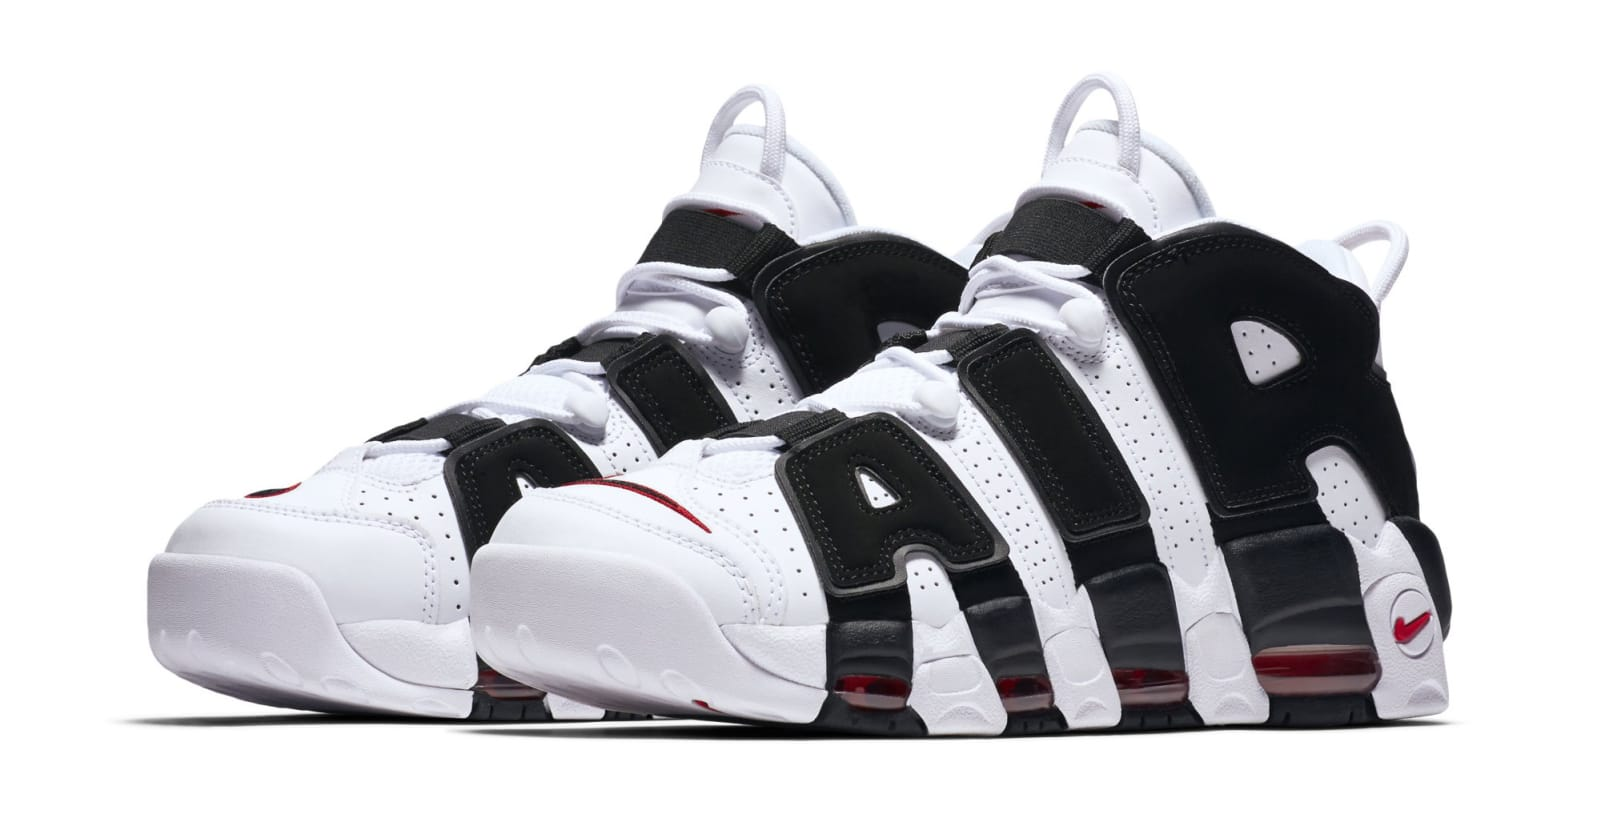 dcd44005e2 Nike Air More Uptempo 'Scottie Pippen' - Release Date Roundup: The ...